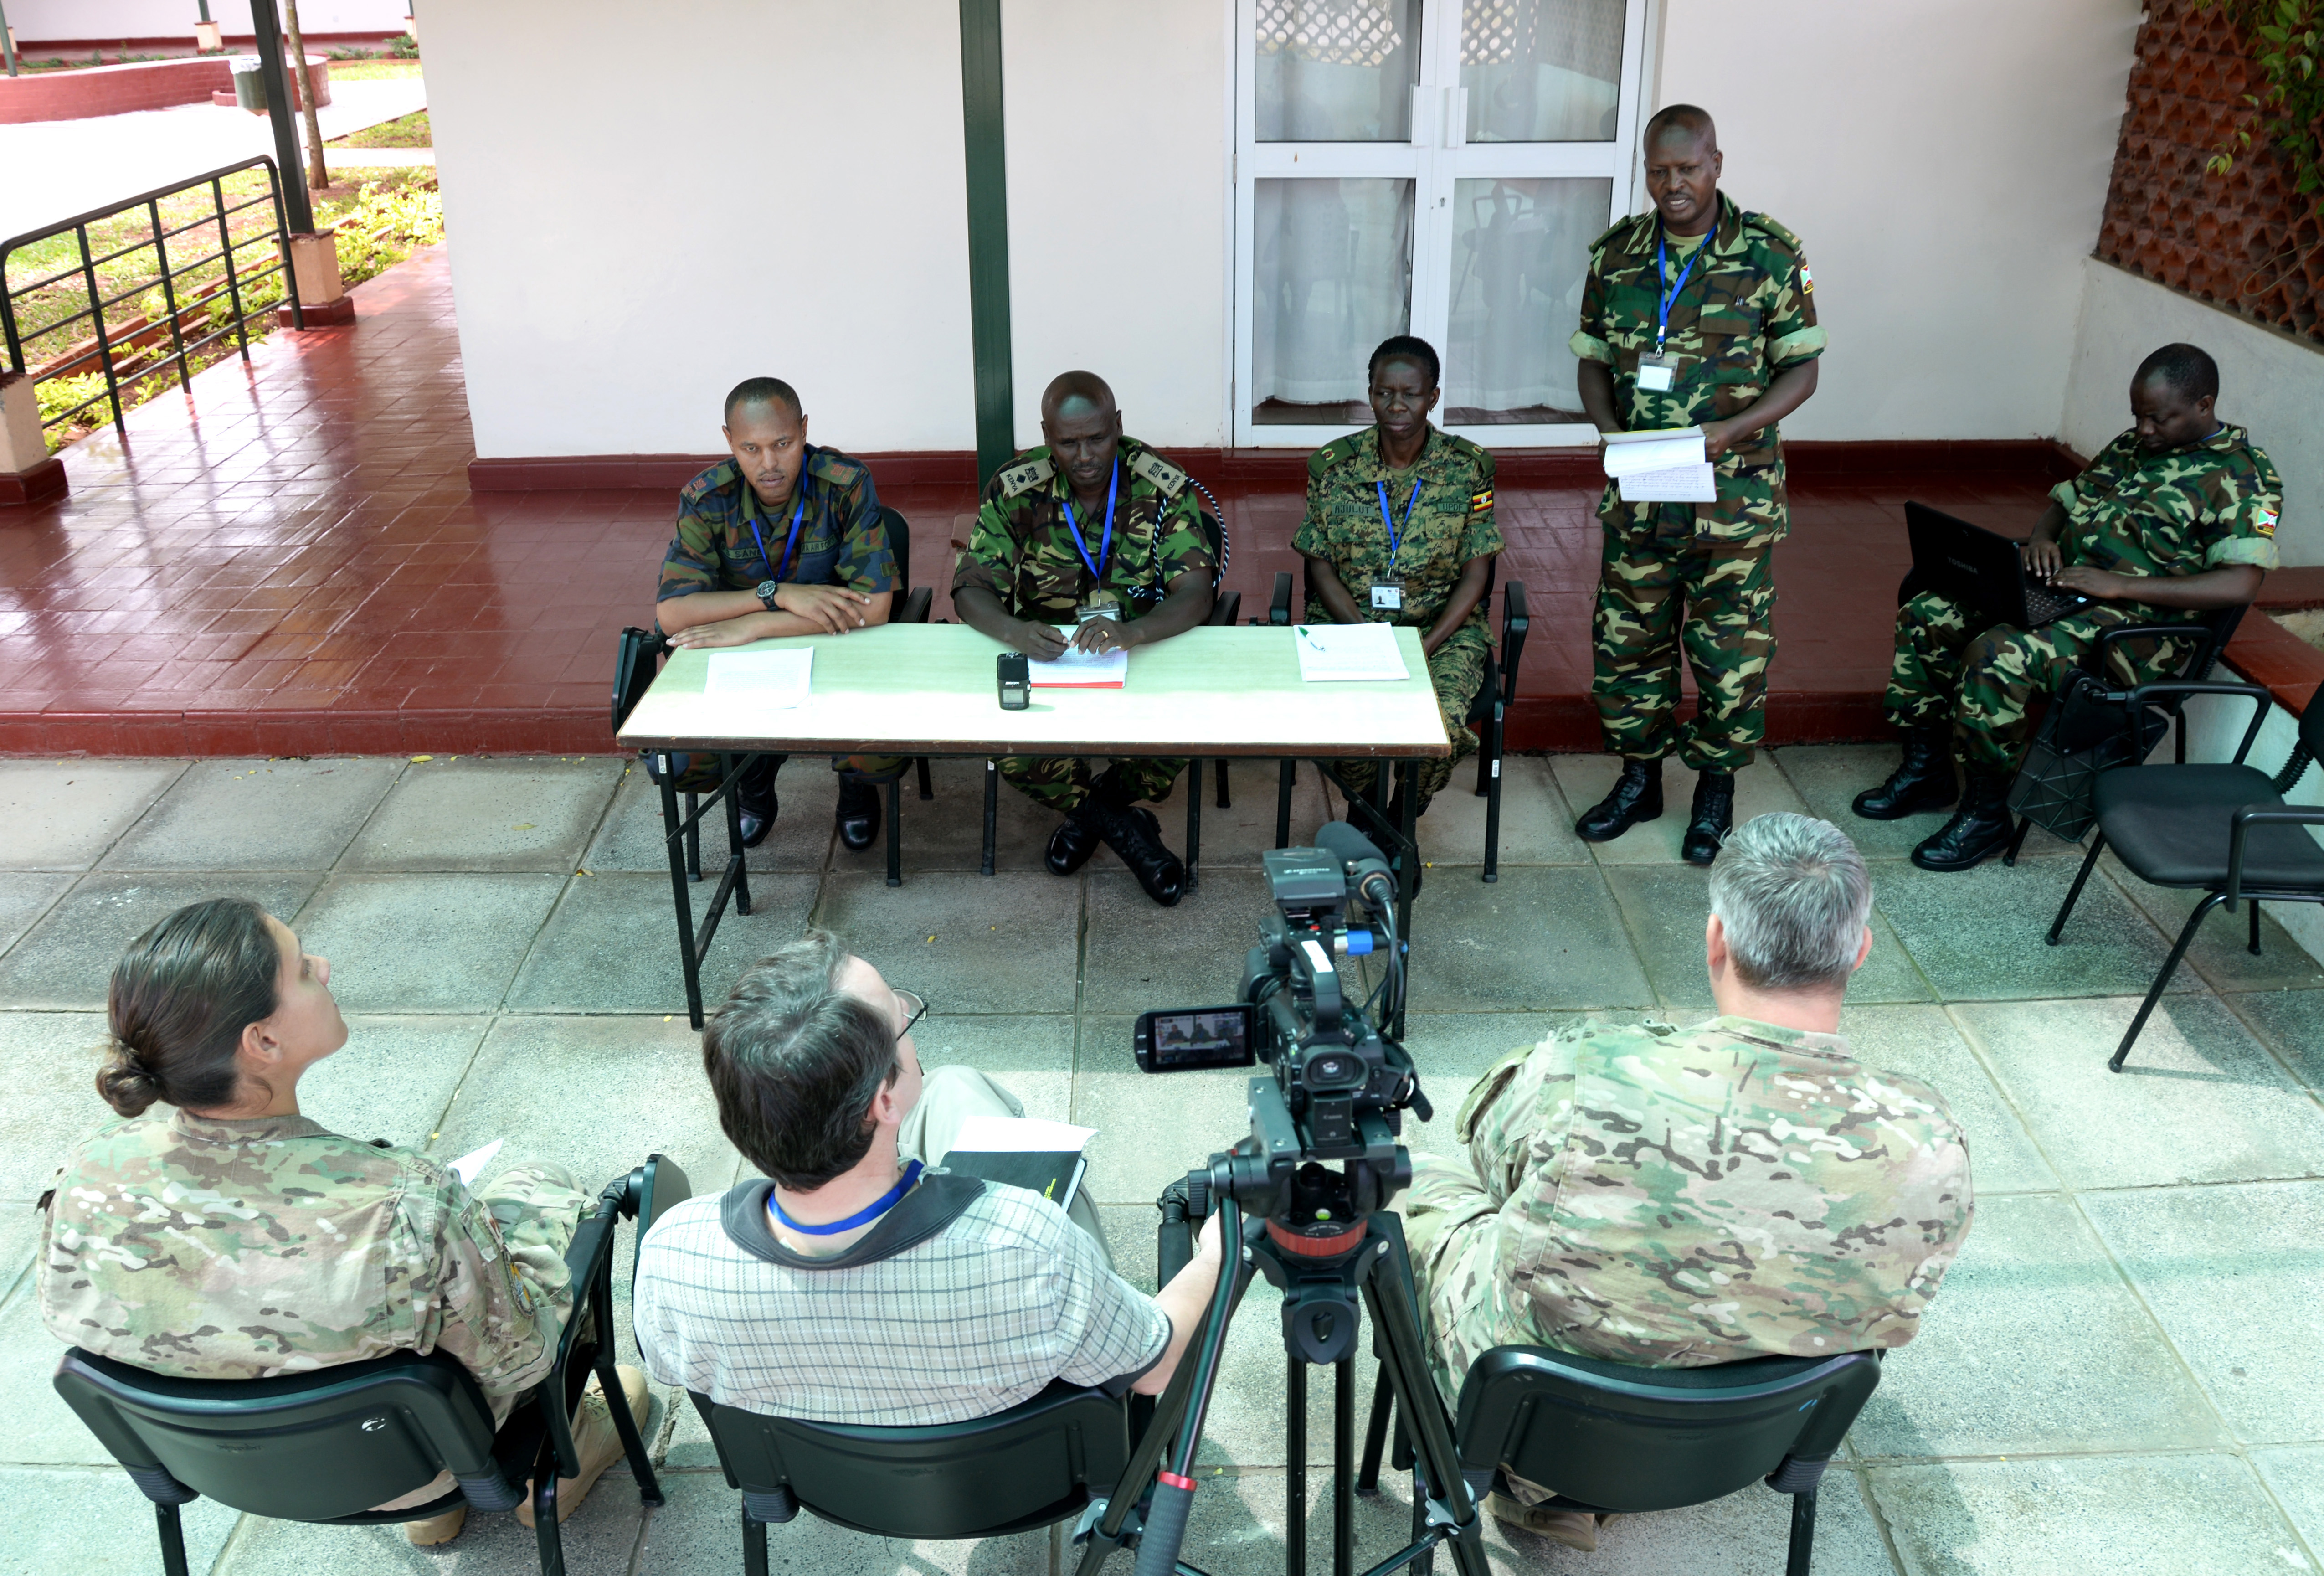 An officer from the Kenya Defence Forces speaks to media at a simulated press conference March 3, 2016, during a course in Nairobi, Kenya to train African Union Mission in Somalia staff officers prior to deployment. The press conference tested the officers' ability to answer questions accurately, confidently and without revealing sensitive military information. (U.S. Air Force photo by Staff Sgt. Kate Thornton)